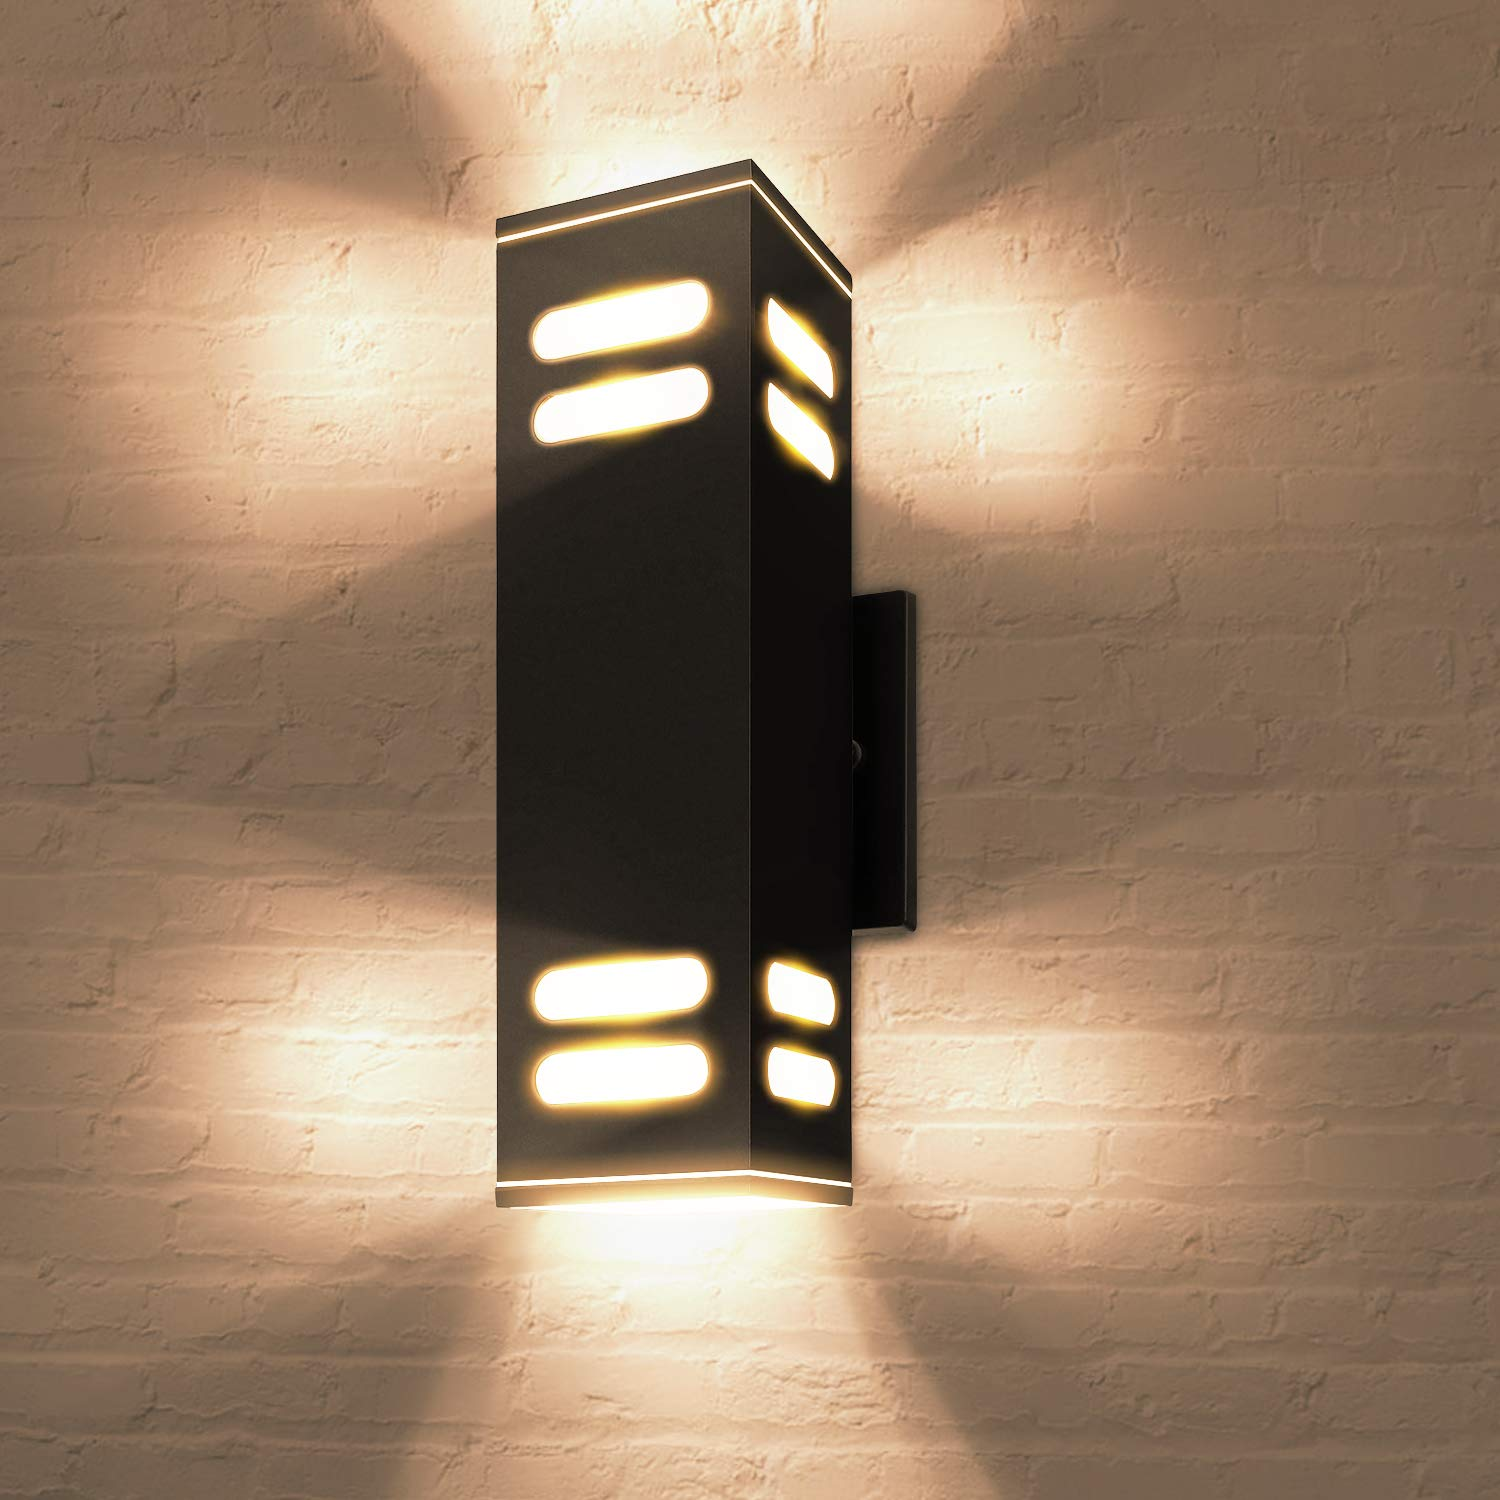 Etl Listed Outdoor Wall Light Fixtures Bulbs Included Jackyled 60w Modern Wall Sconce Exterior Porch Light Frosted Aluminum Finish Waterproof Wall Mount Lamp For Studio Front Door Patio 1 Pack Black Buy Online